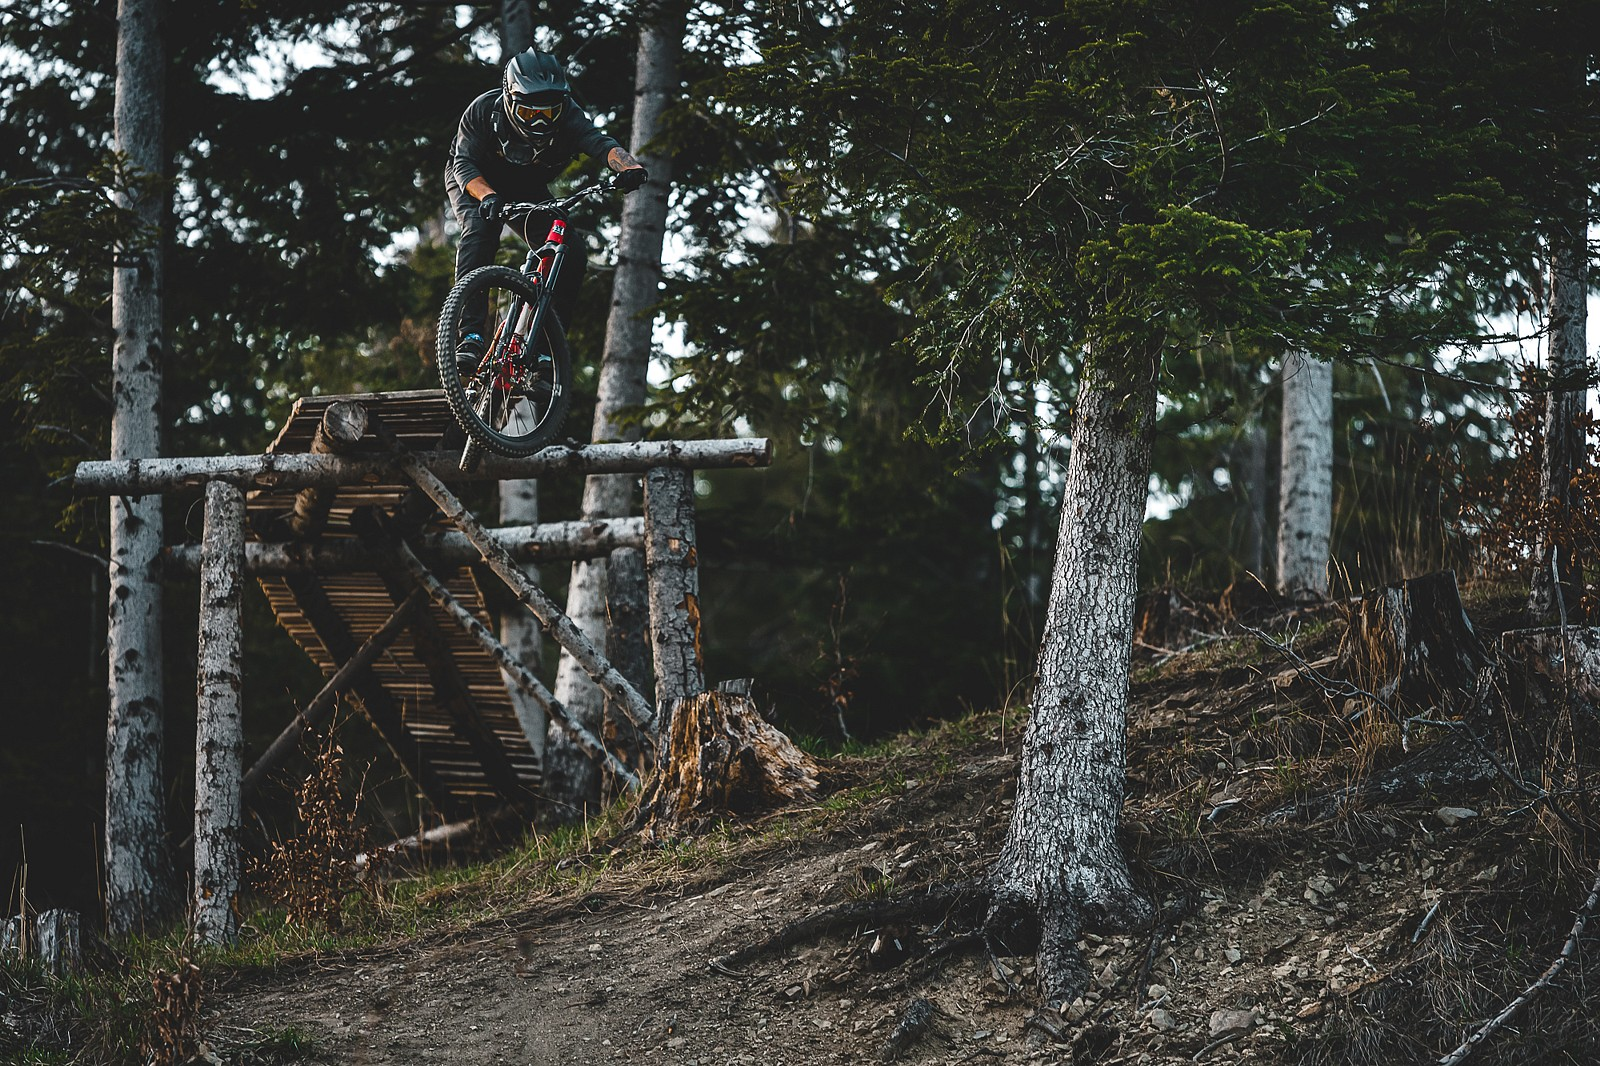 home spot - Banan - Mountain Biking Pictures - Vital MTB